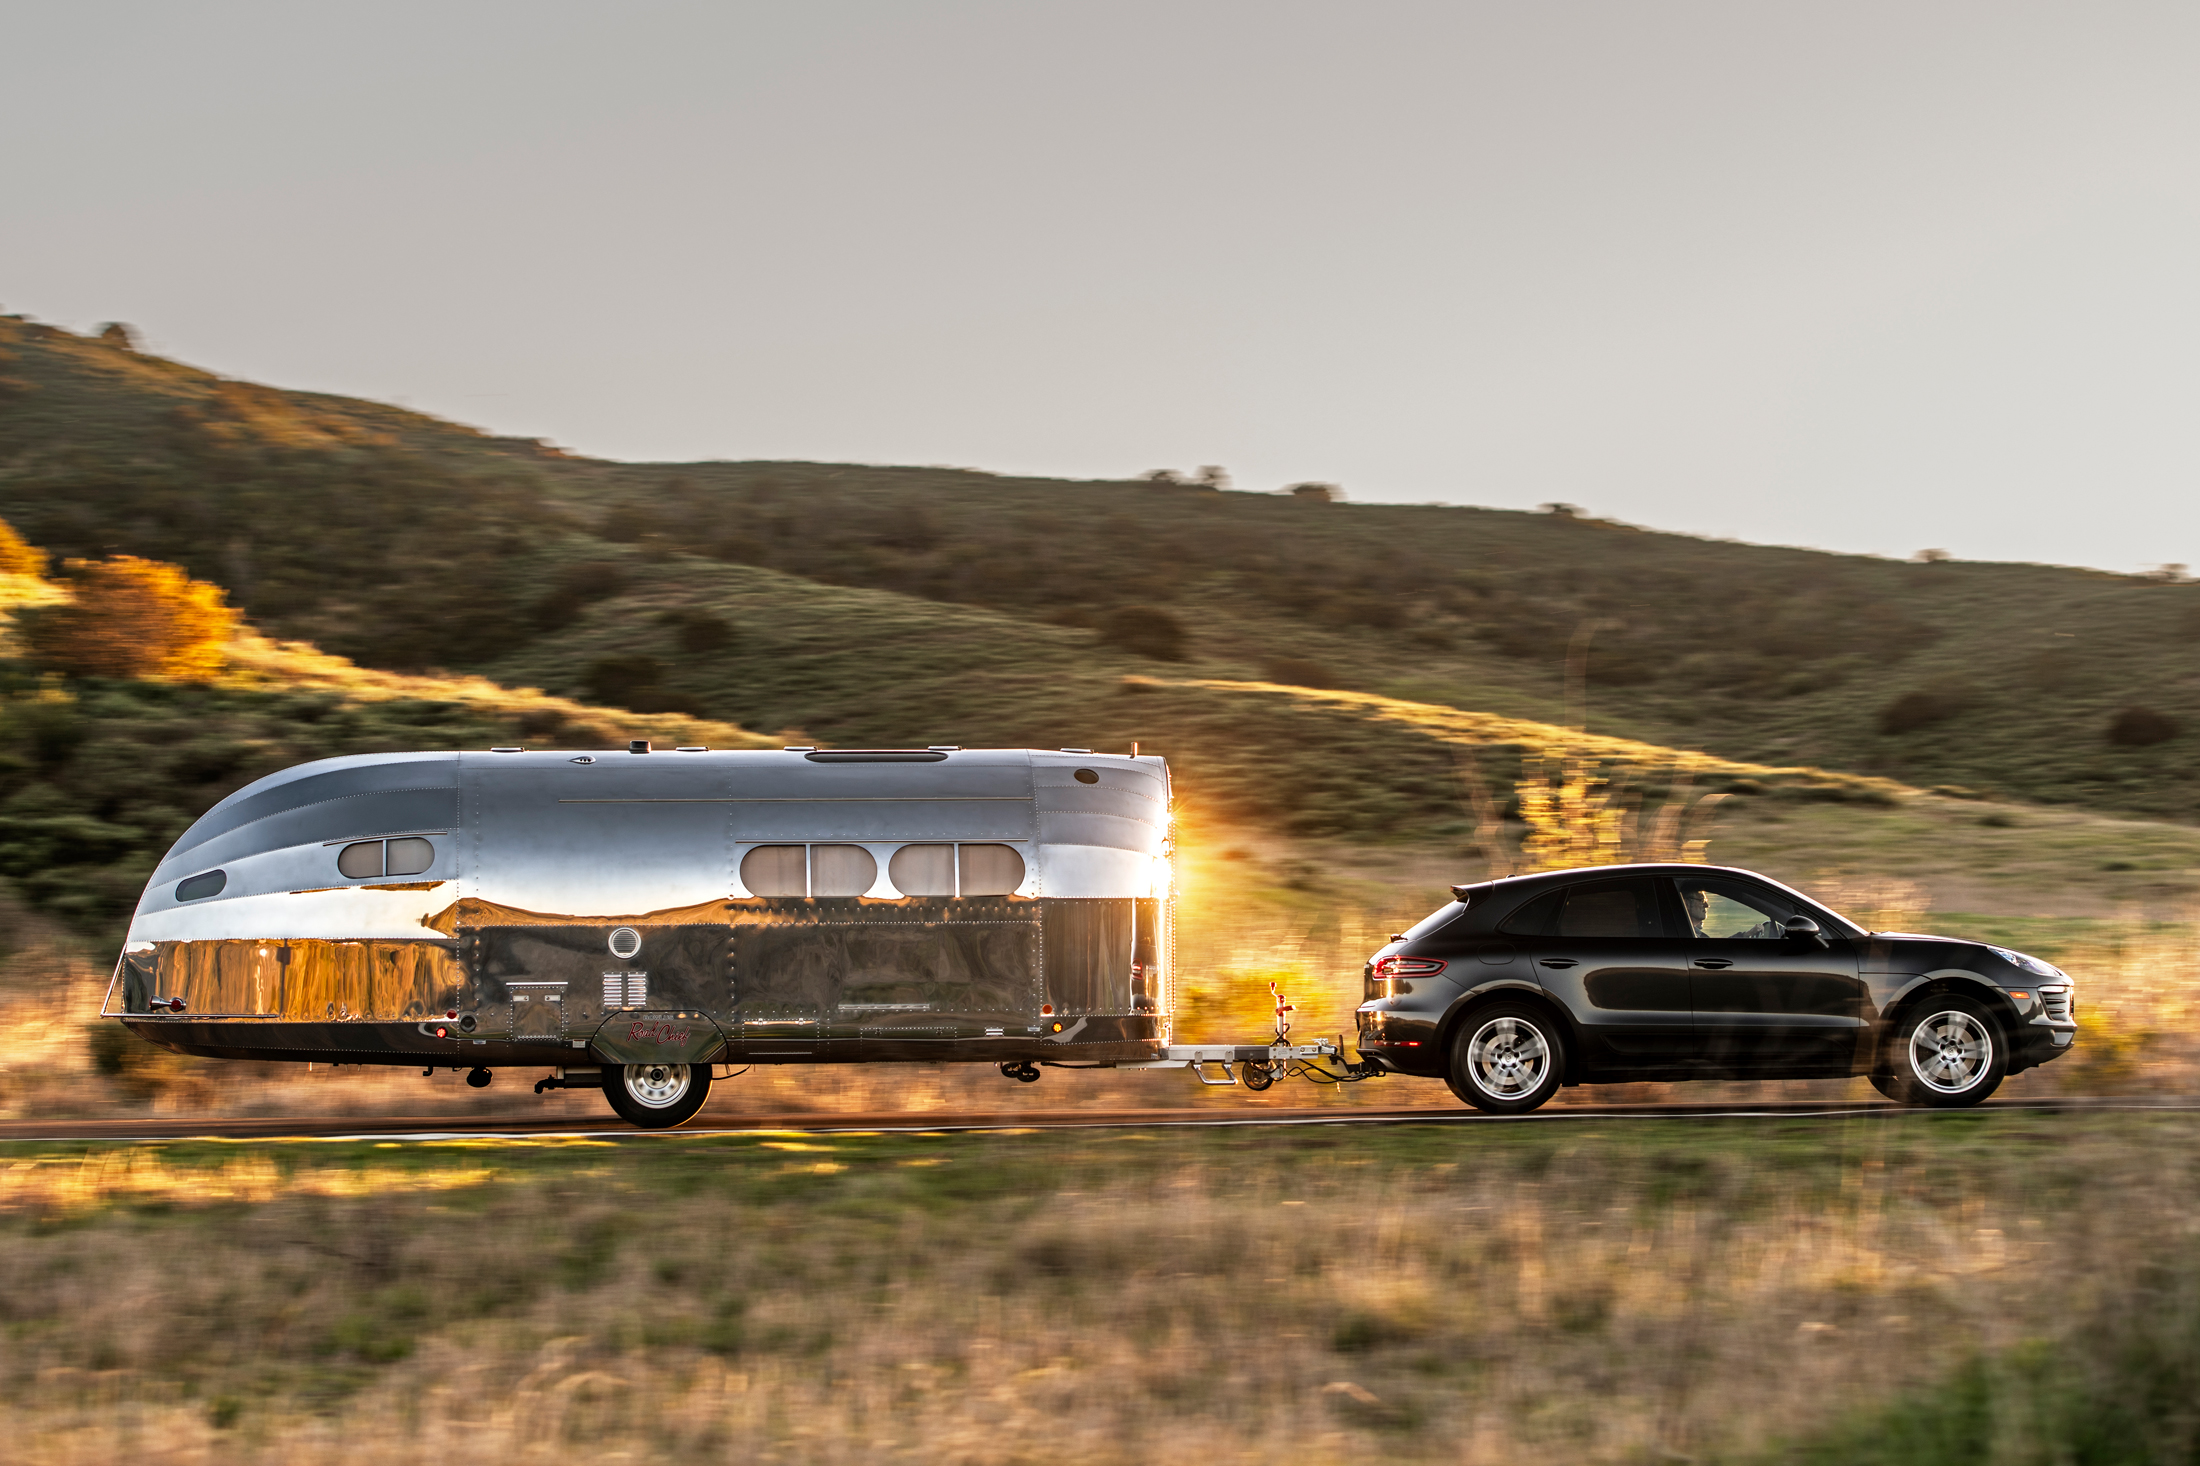 Yacht on Wheels: Bowlus Road Chief Endless Highways Performance Edition Trailer | GearJunkie